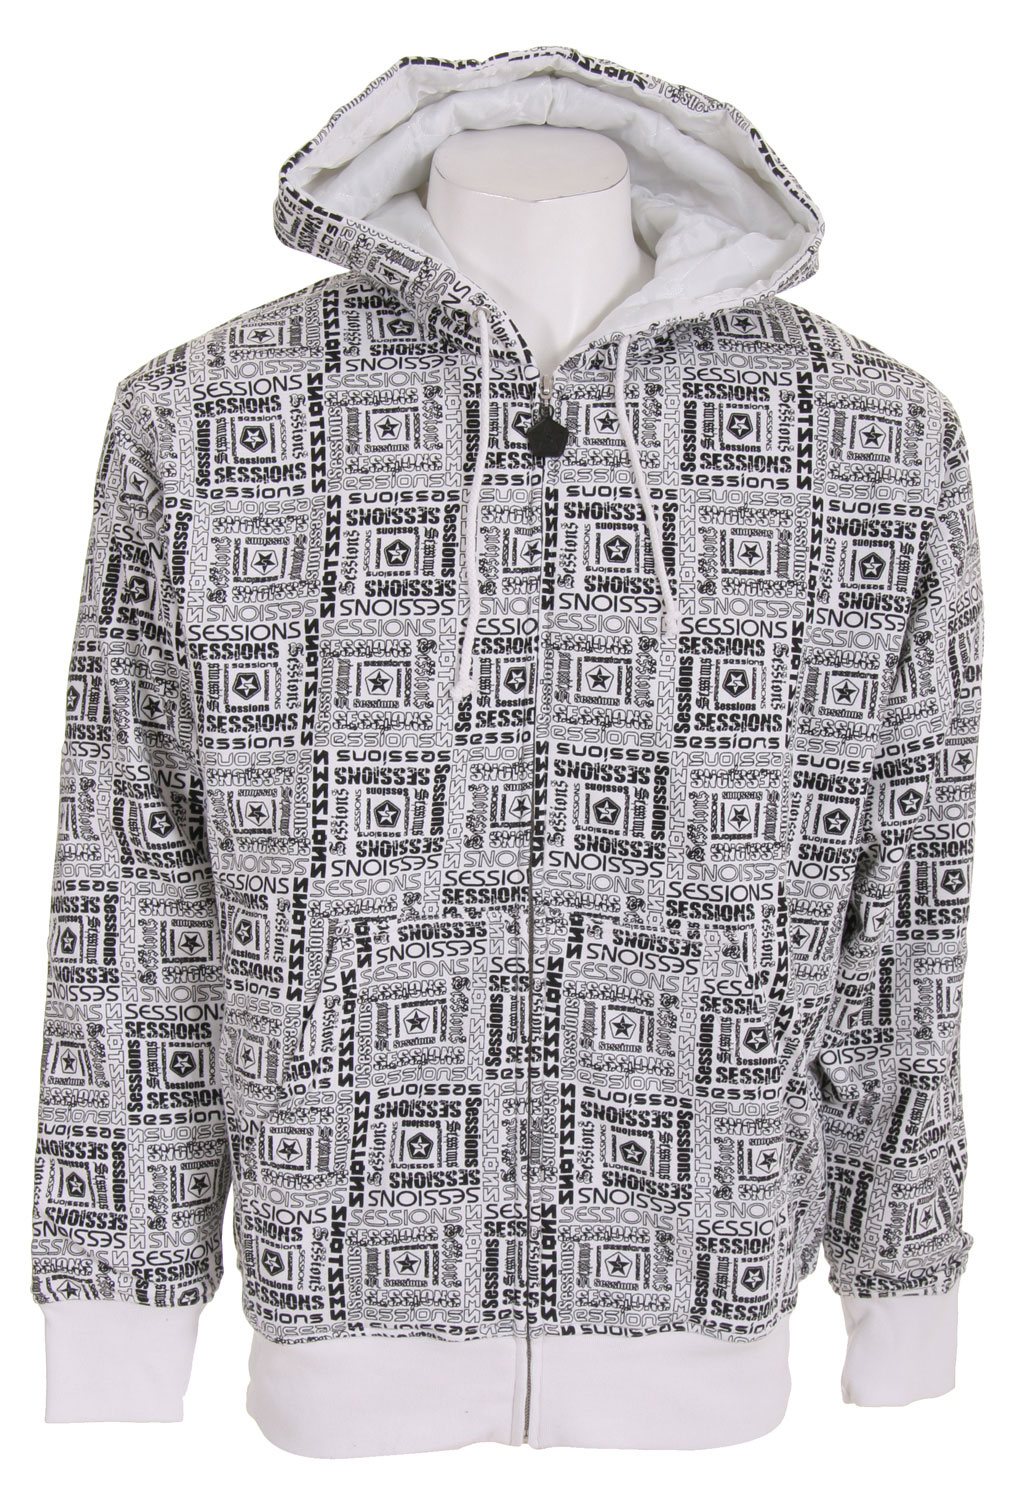 The Sessions Boss Zip Hoodie is a work of art. It is covered with an amazing print and is sure to draw eyes on the slopes, while pulling off a kick flip, or while you're just walking around town. It's satin liner is comfortable on the skin so there is no need to wear a long sleeve shirt underneath like you would while wearing a cheaper imitation hoodie. The cotton is well made and it fits like a king's best robe. A one of a kind hodie with a one of a kind print.Key Features of The Sessions Boss Zip Hoodie: All Over Print Quilted Satin Liner 80% Cotton/20% Poly - $27.85